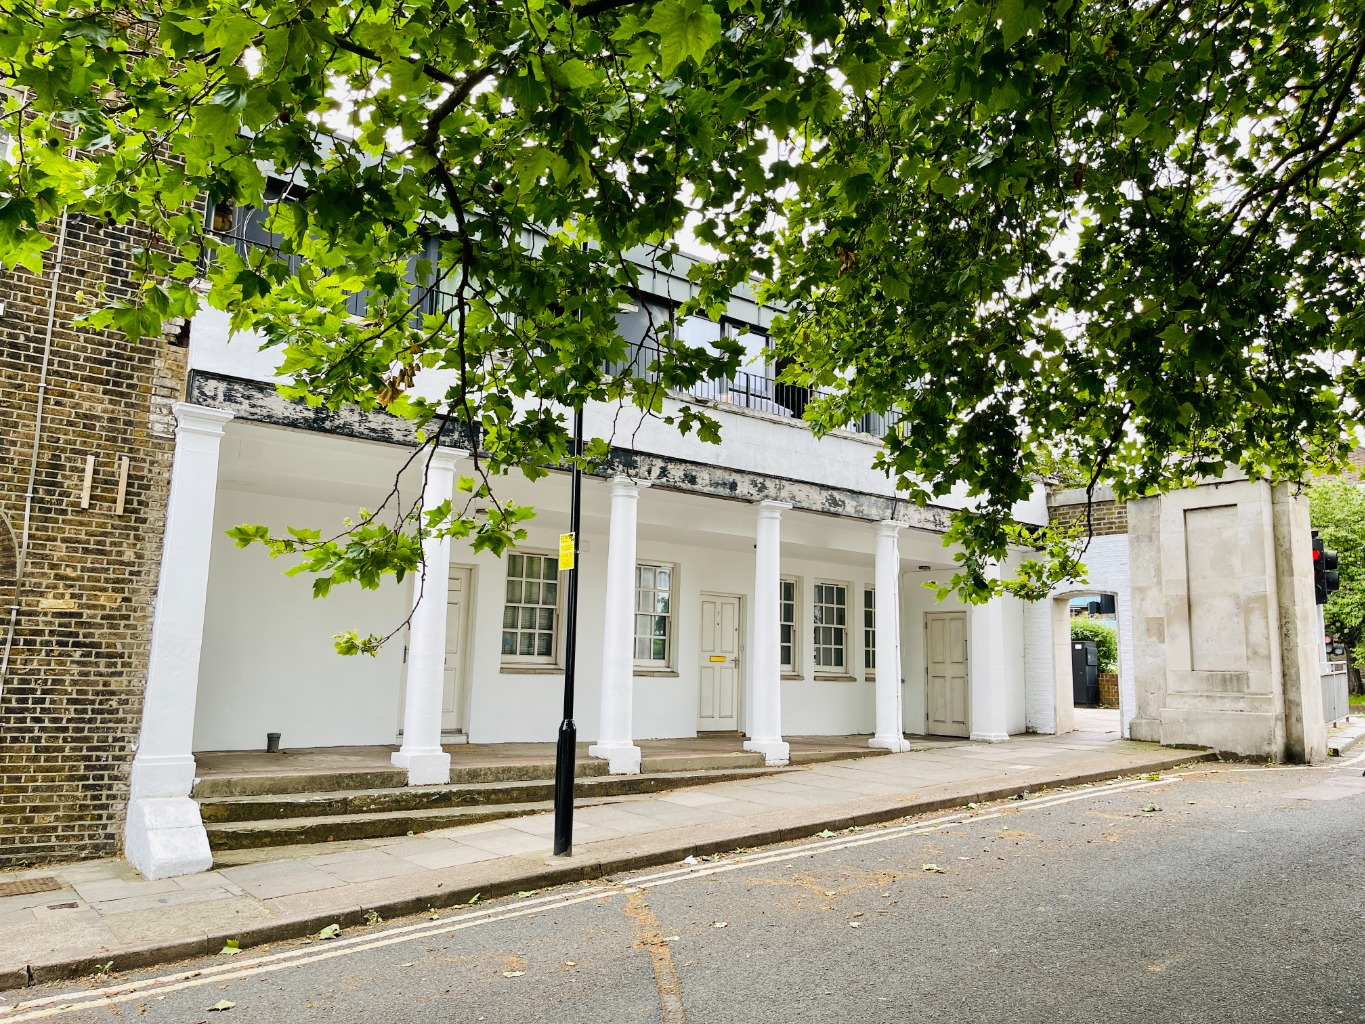 3 bed flat for sale in Archway Court, Leda Road, London - Property Image 1